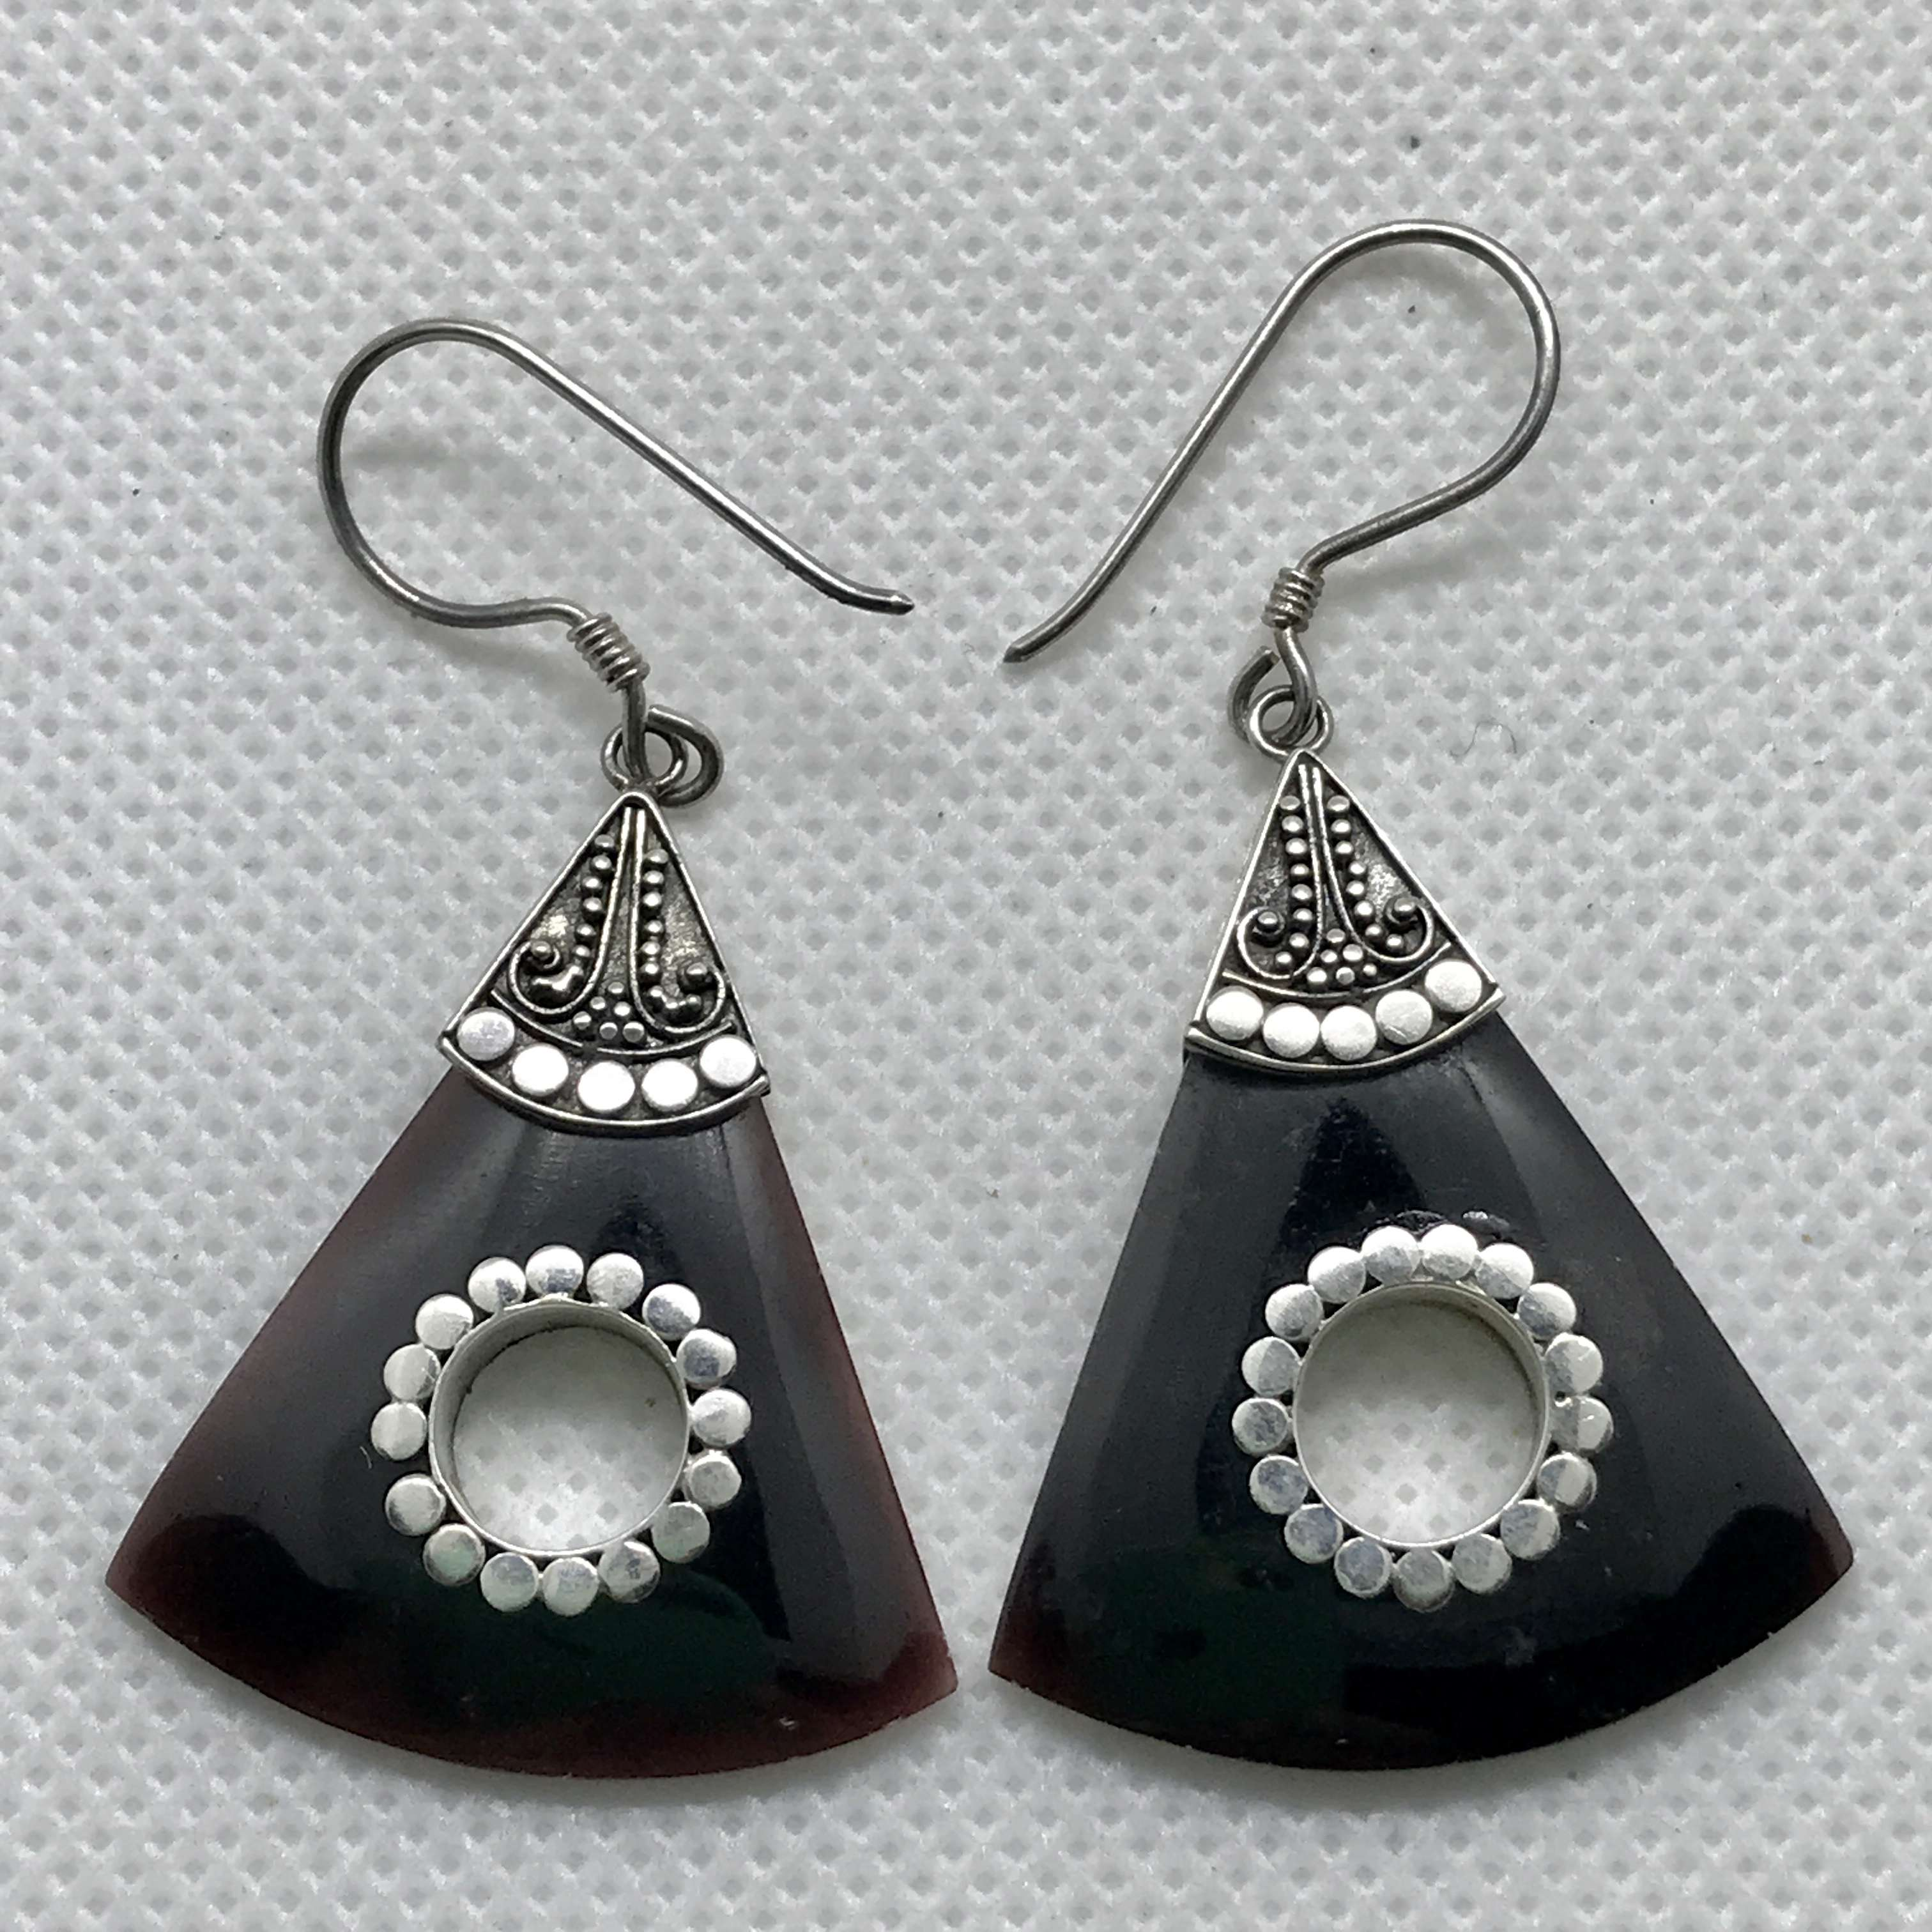 BALI 925 STERLING SILVER EARRINGS WITH BLACK SHELL